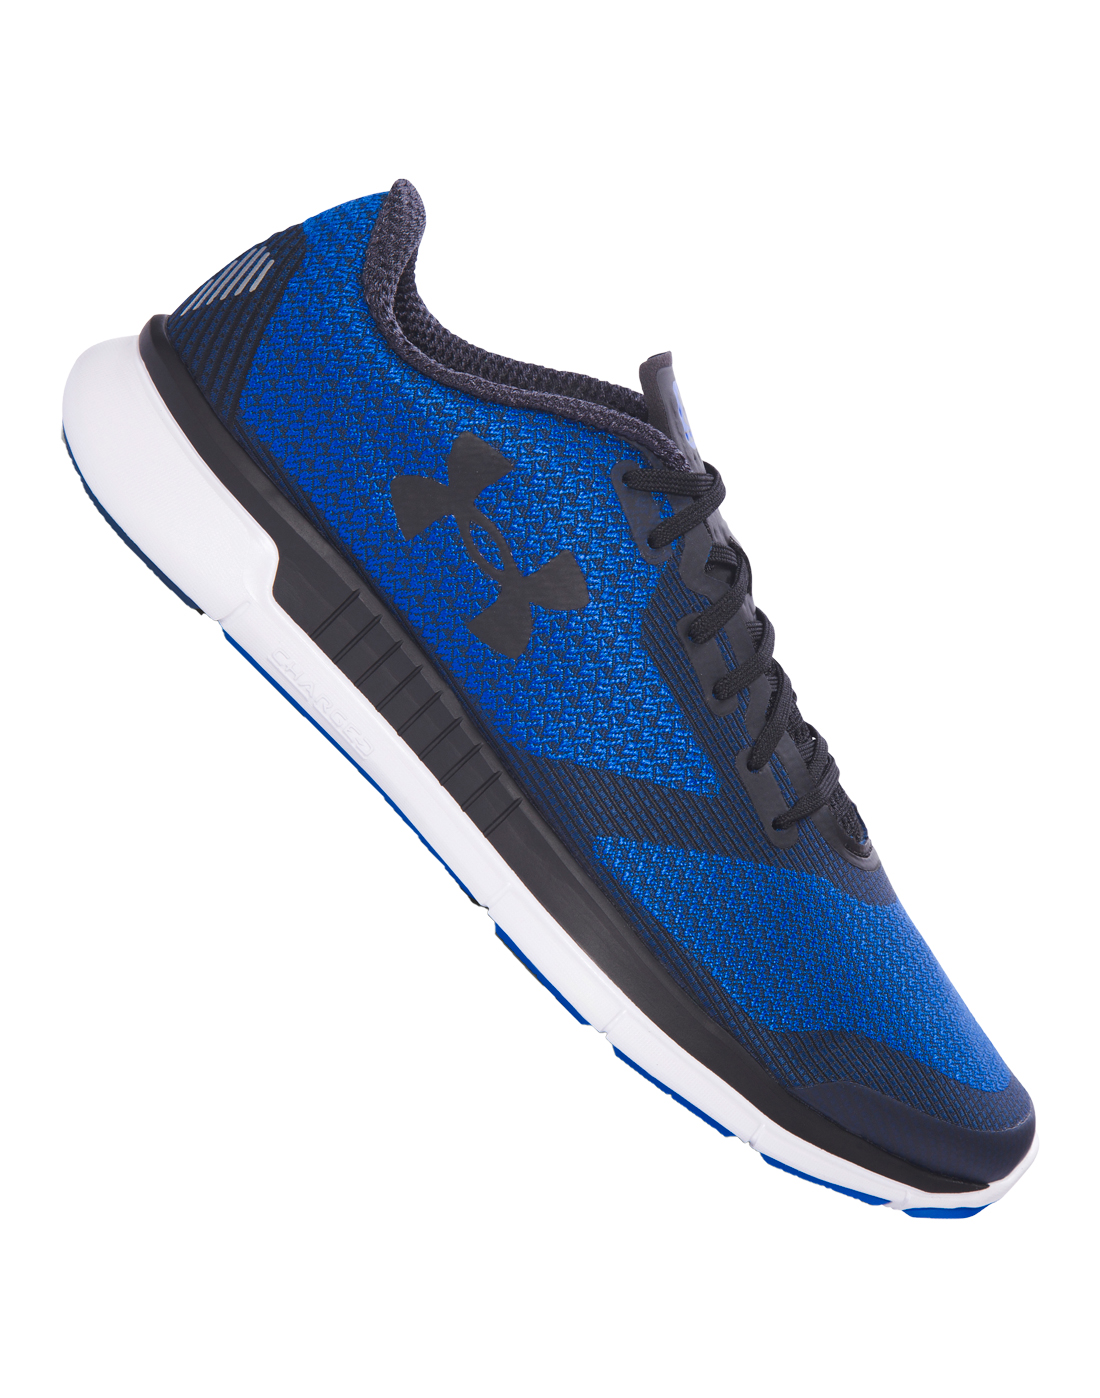 new arrival a4610 14bd1 Under Armour Mens Charged Lightning | Life Style Sports